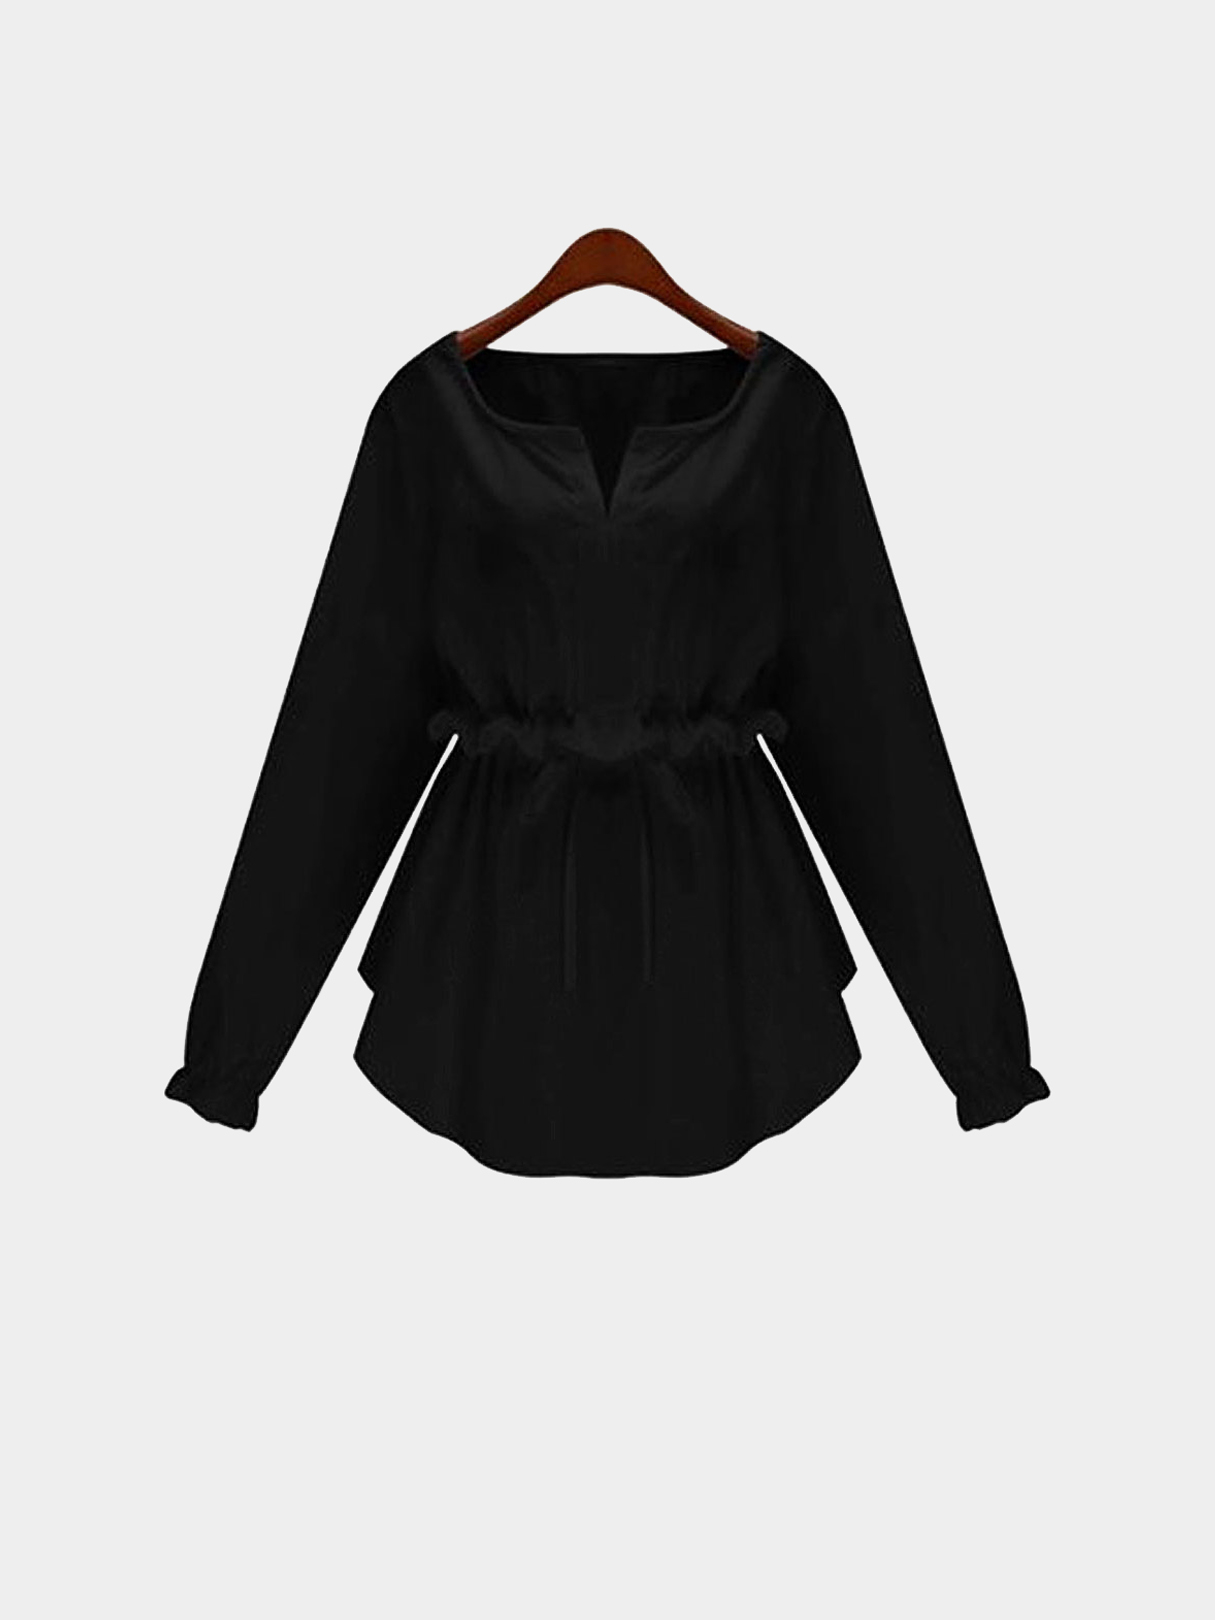 Plus Size Black Long Sleeve Flounced Blouse With Drawstring